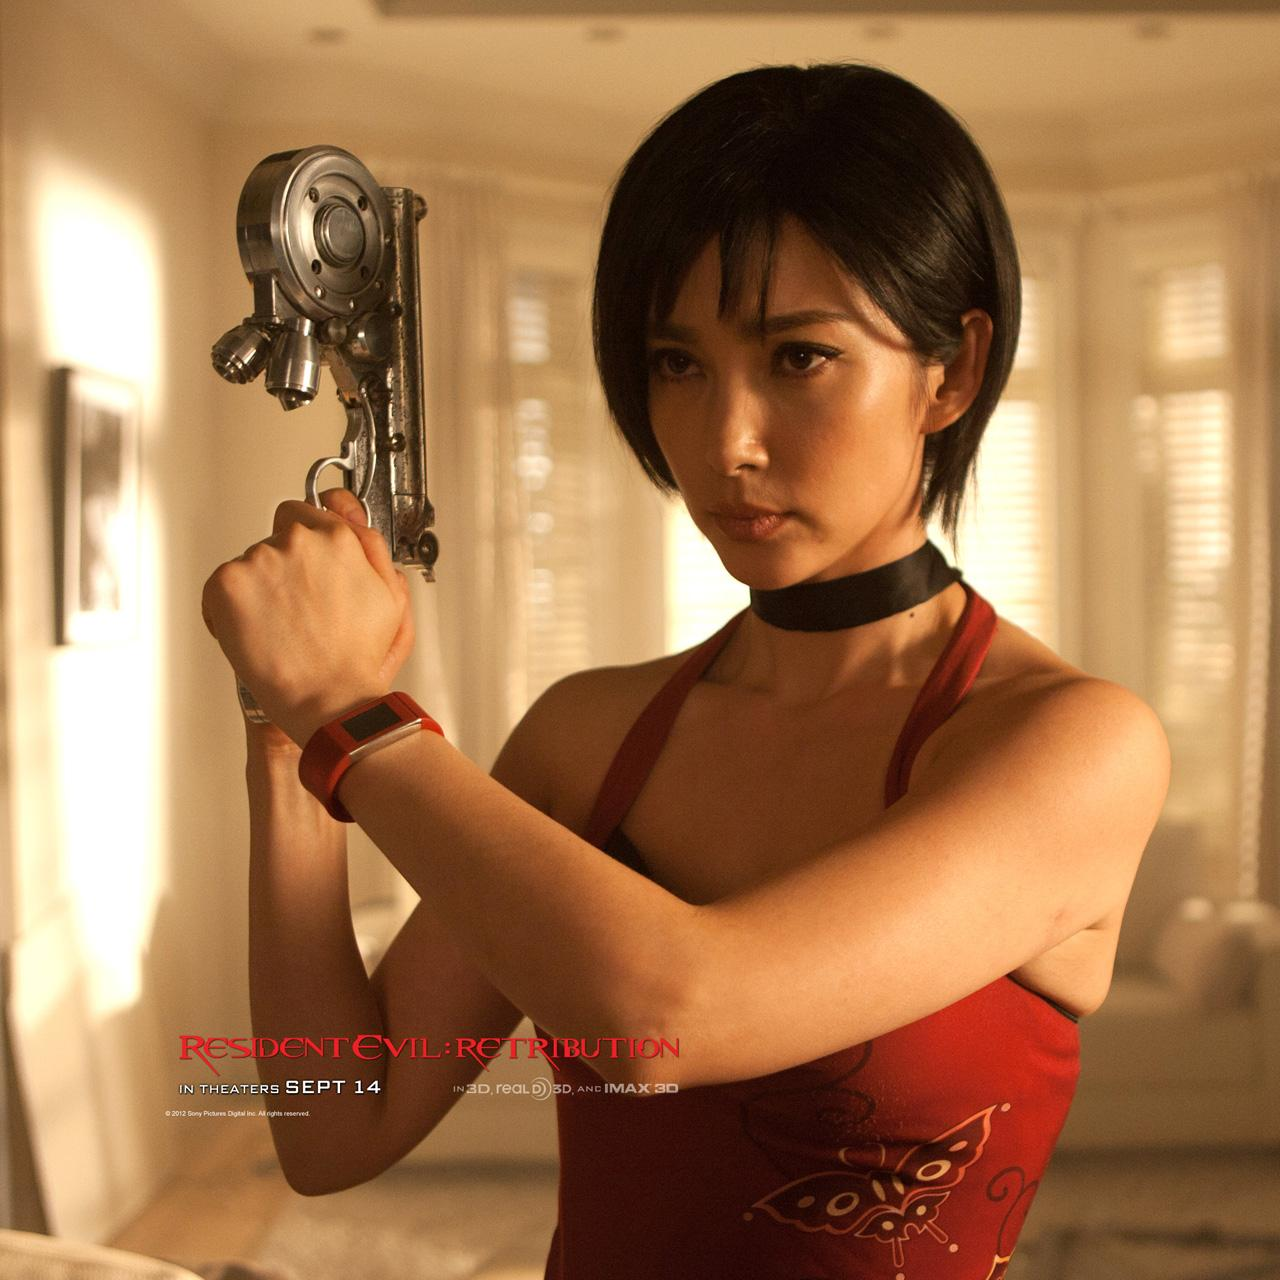 Resident Evil Retribution: A review of the ridiculous from Chazvoltaire